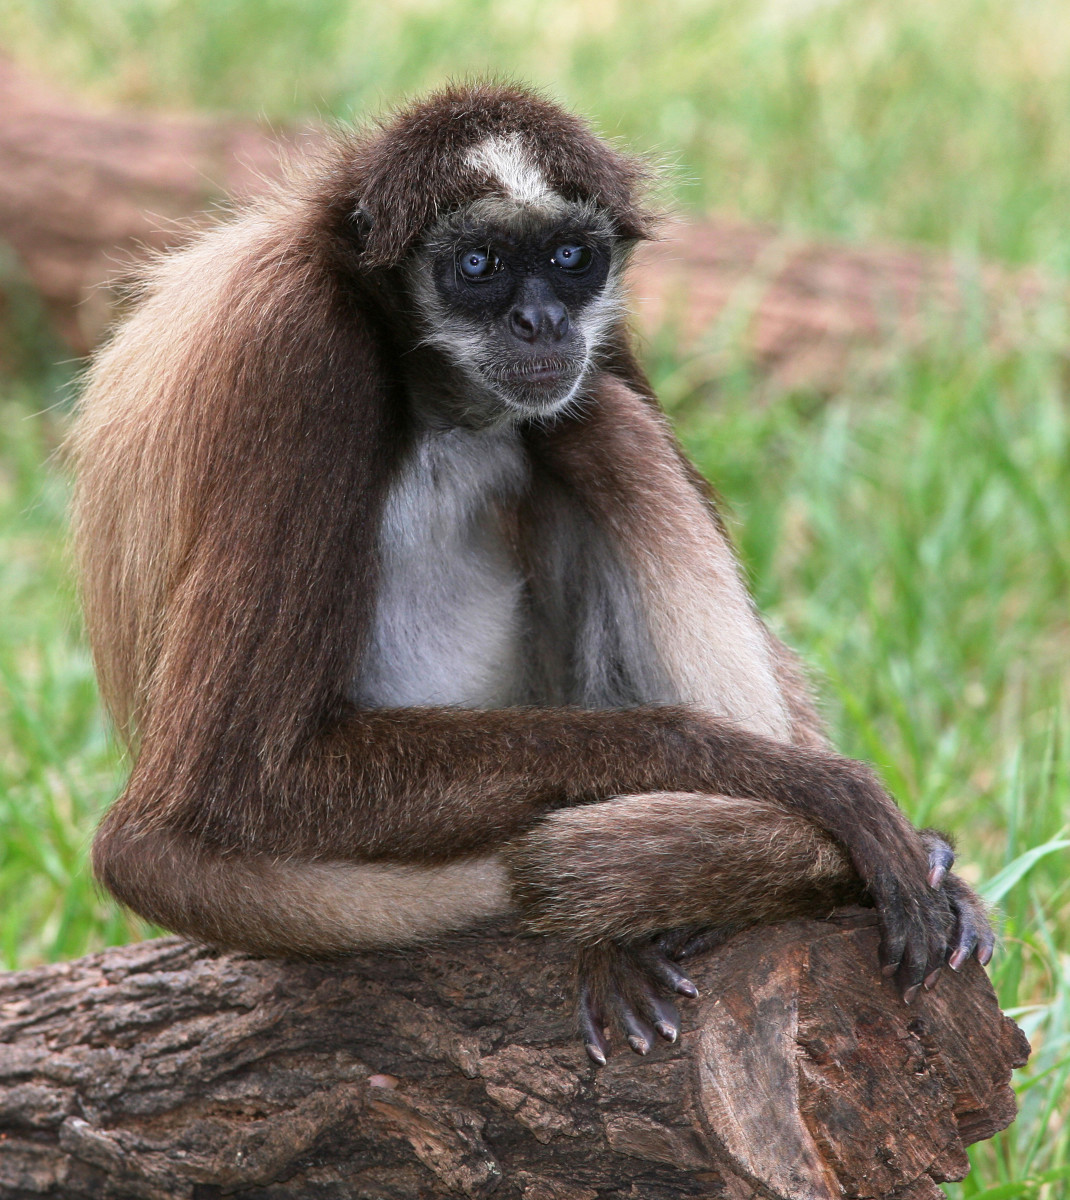 Spider monkeys are threatened by loss of habitat.